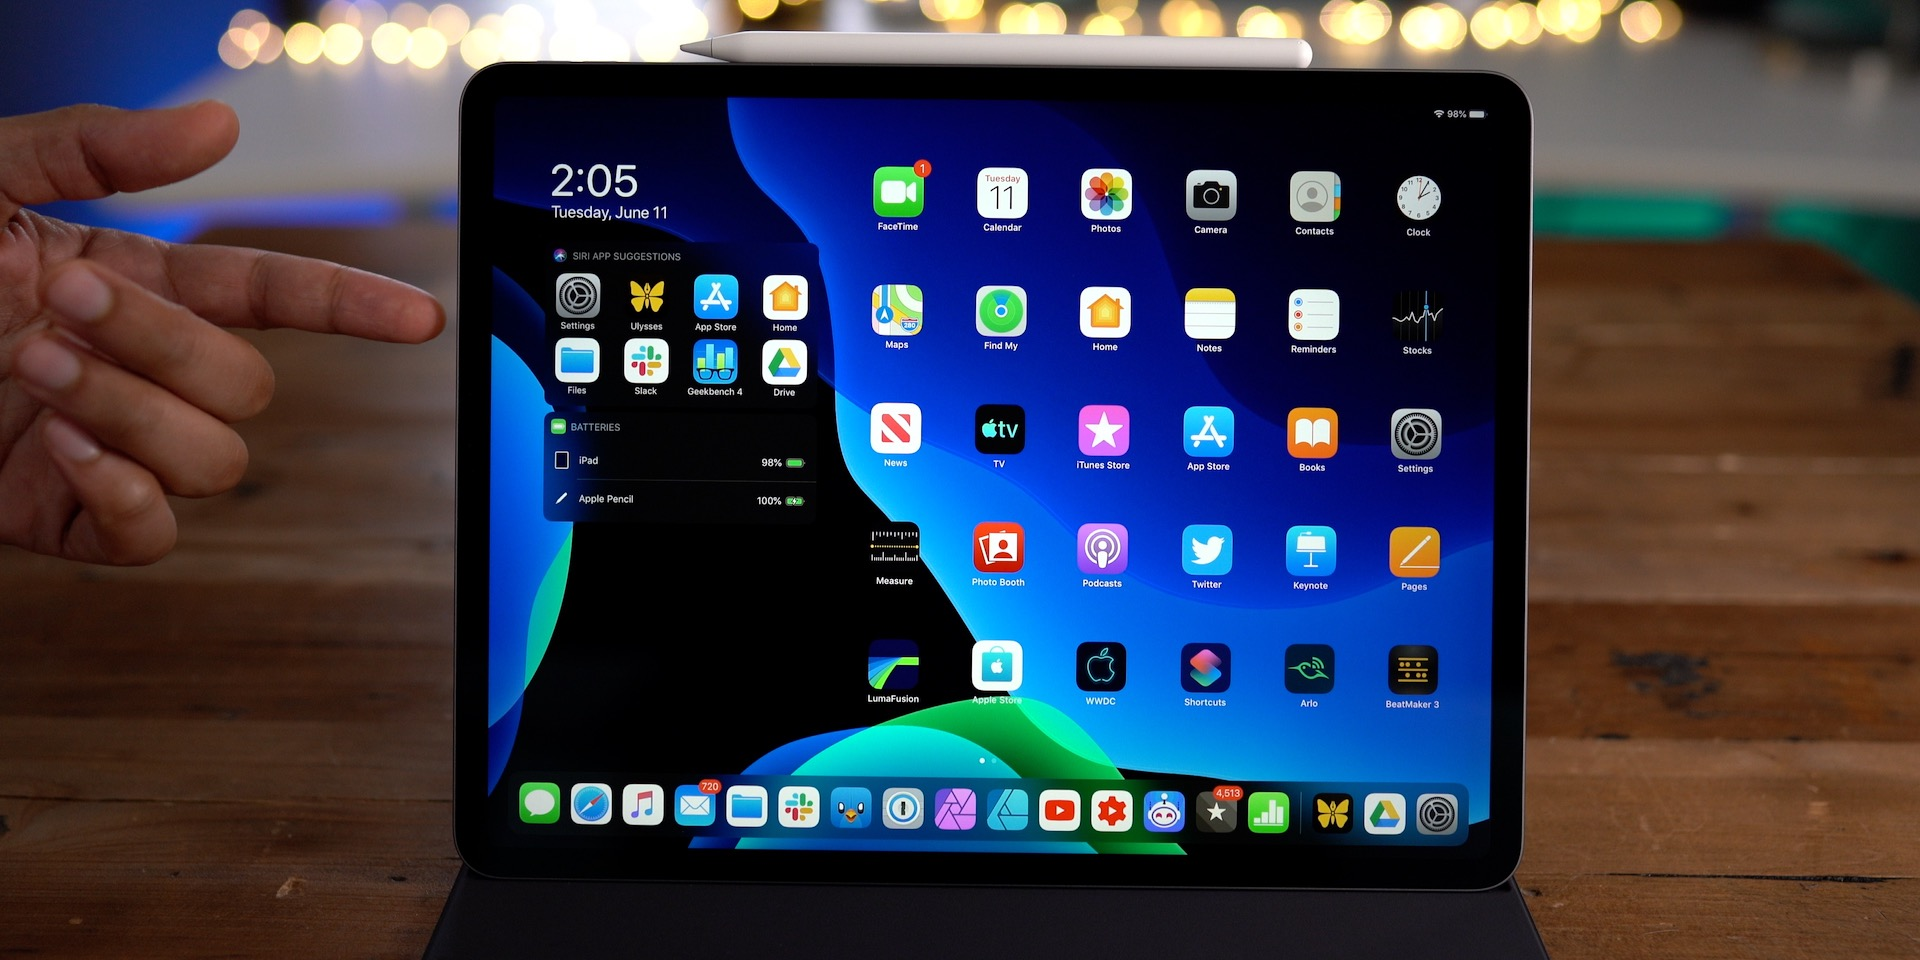 Hands-on with 50 new iPadOS 13 changes and features [Video